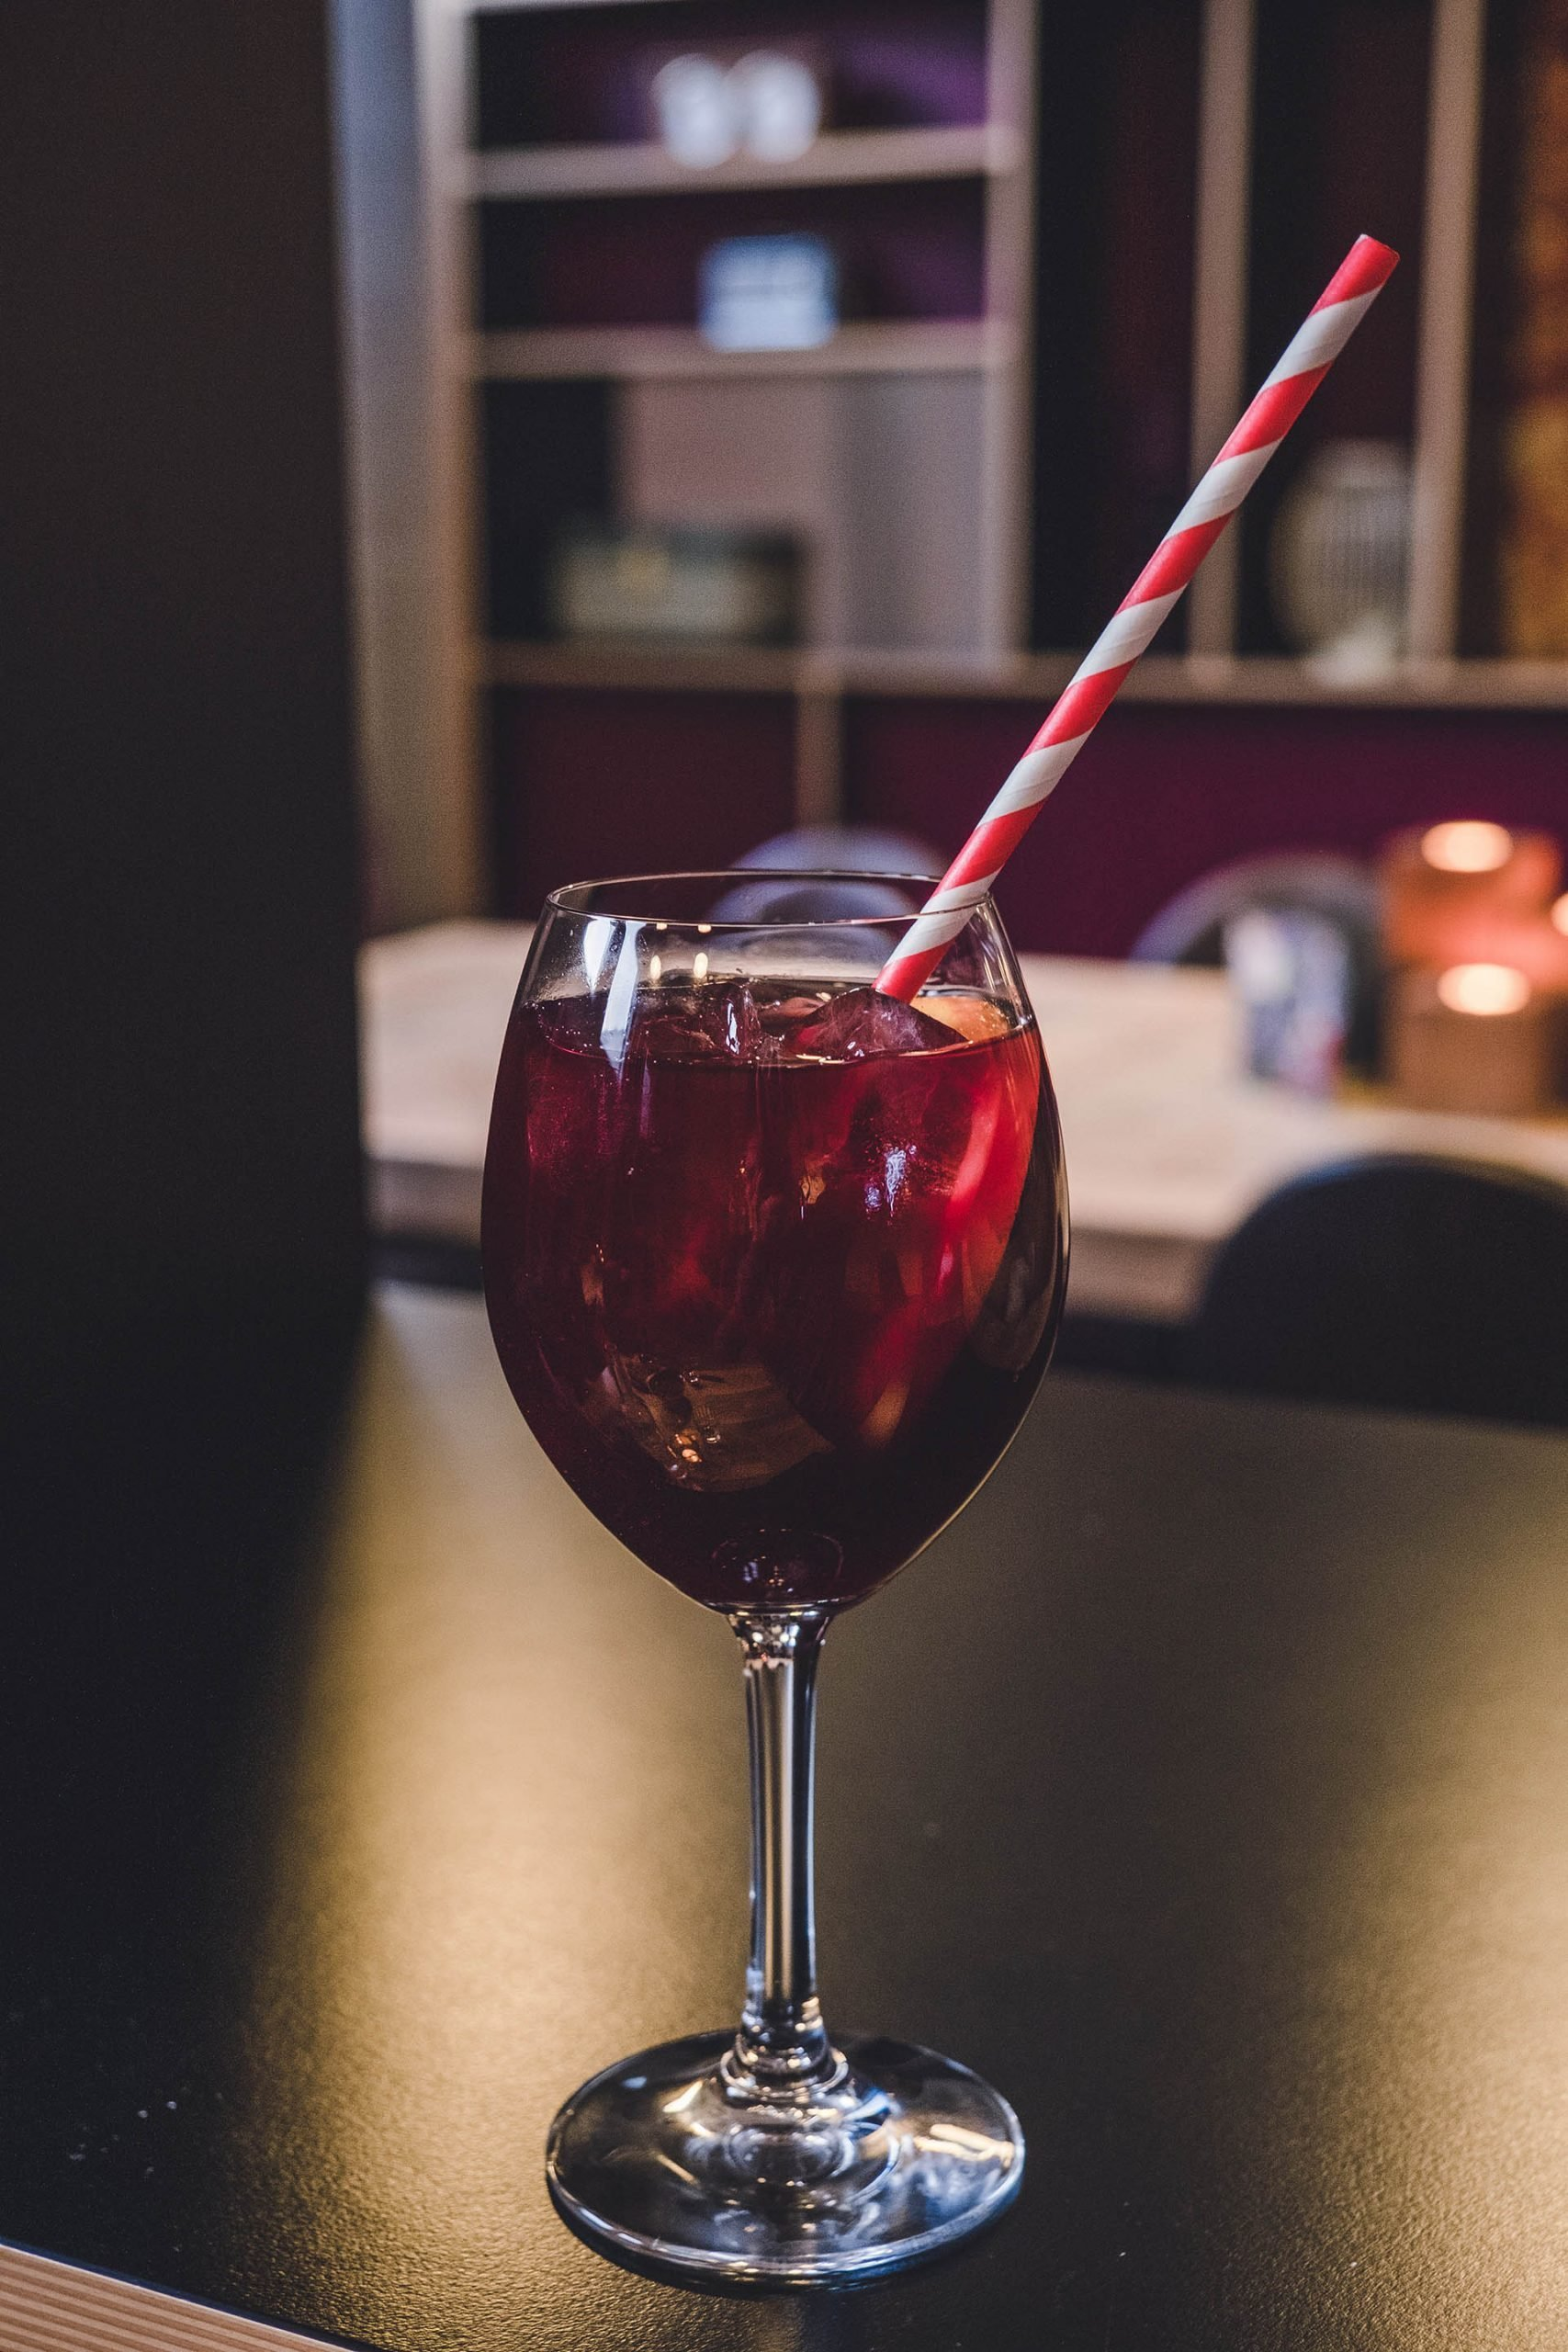 We had to try the sangria cocktail